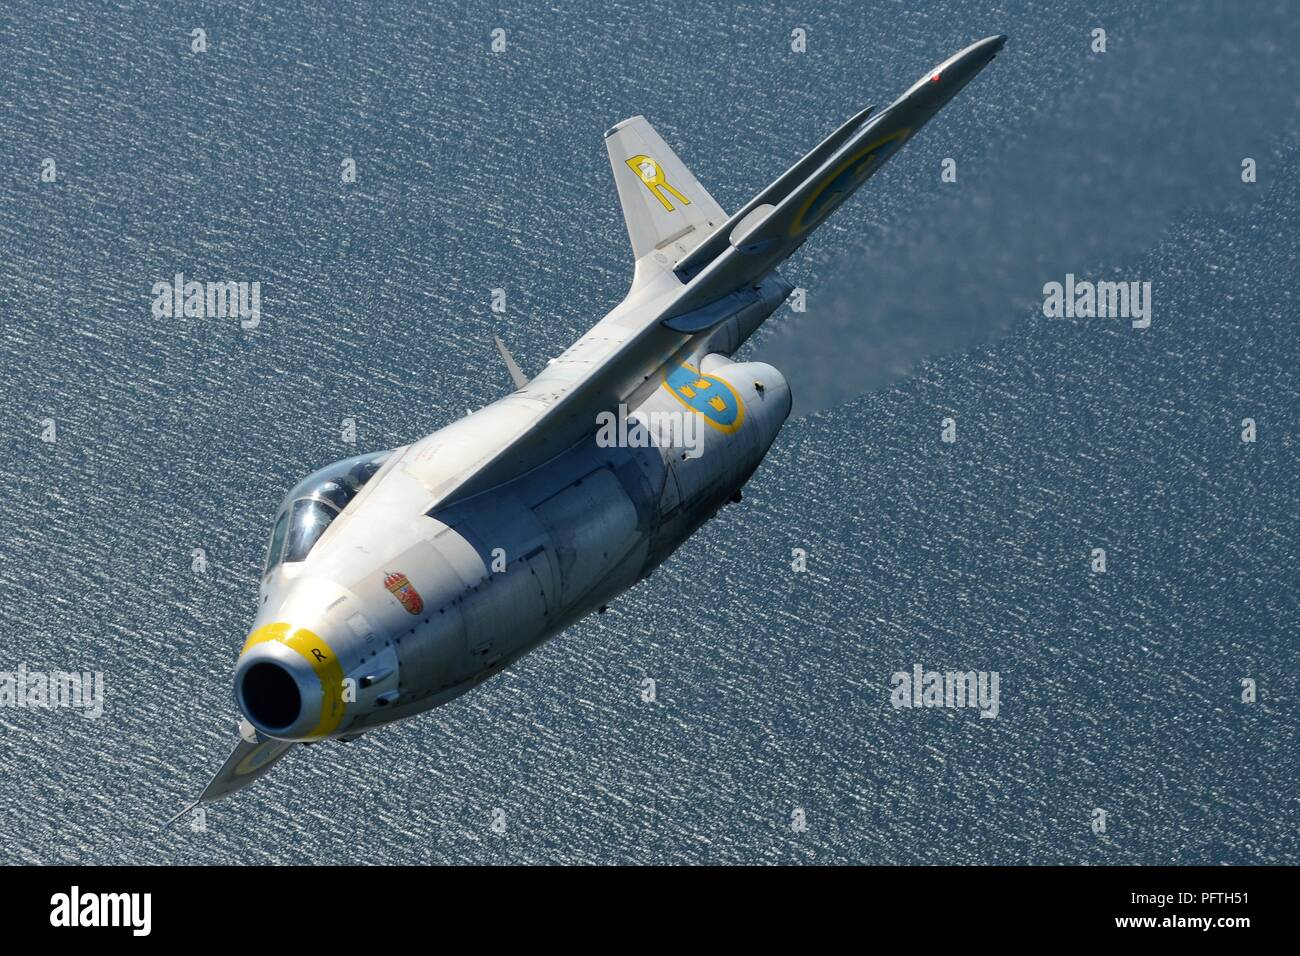 SAAB J-29F TUNNAN OF THE SWEDISH AIR FORCE HISTORIC FLIGHT - Stock Image